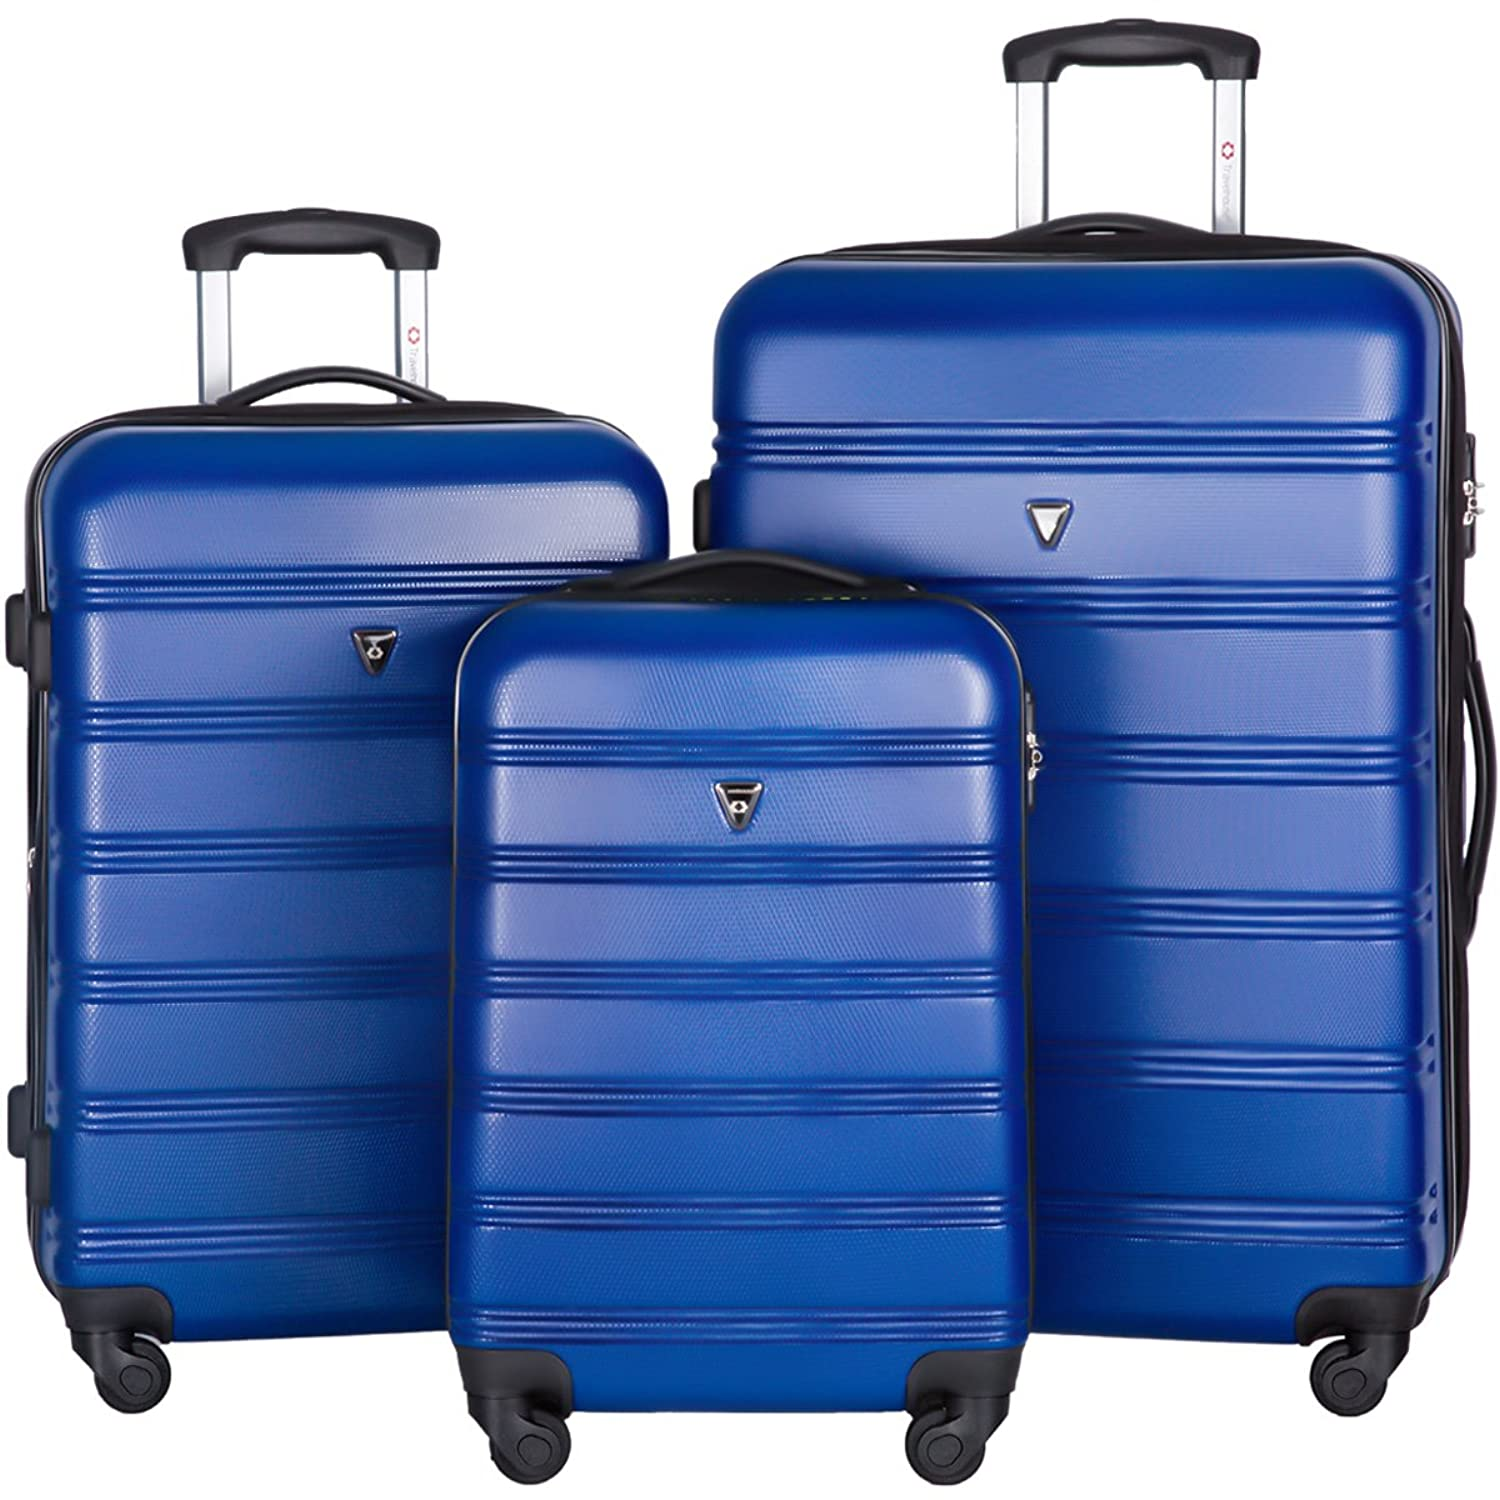 Amazon Best Sellers: Best Luggage Sets